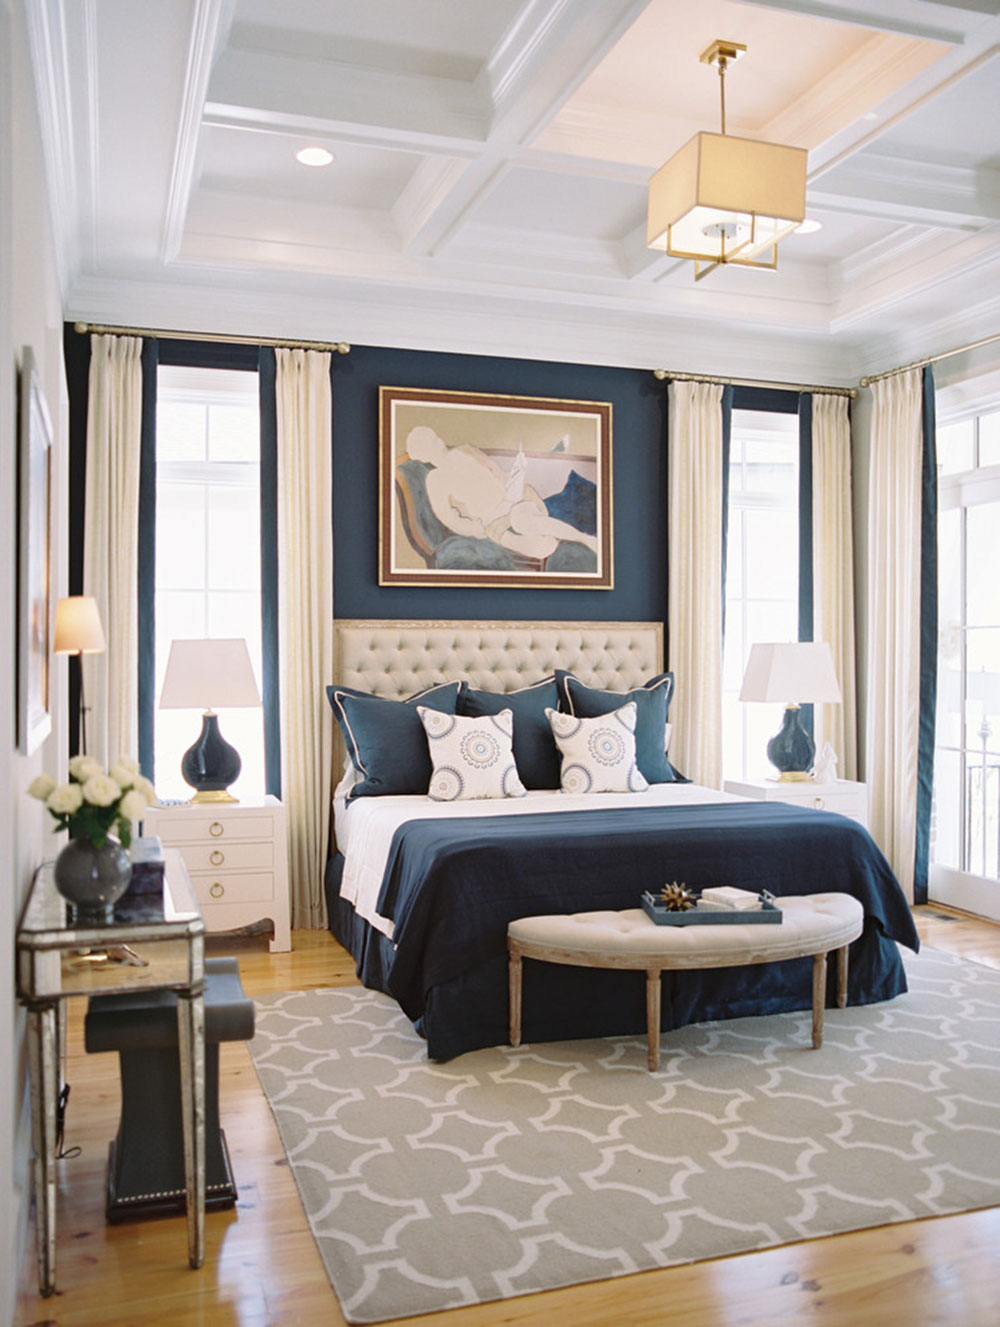 An Entire Palette Of Bedroom Color Combinations5 Bedroom Color Combinations